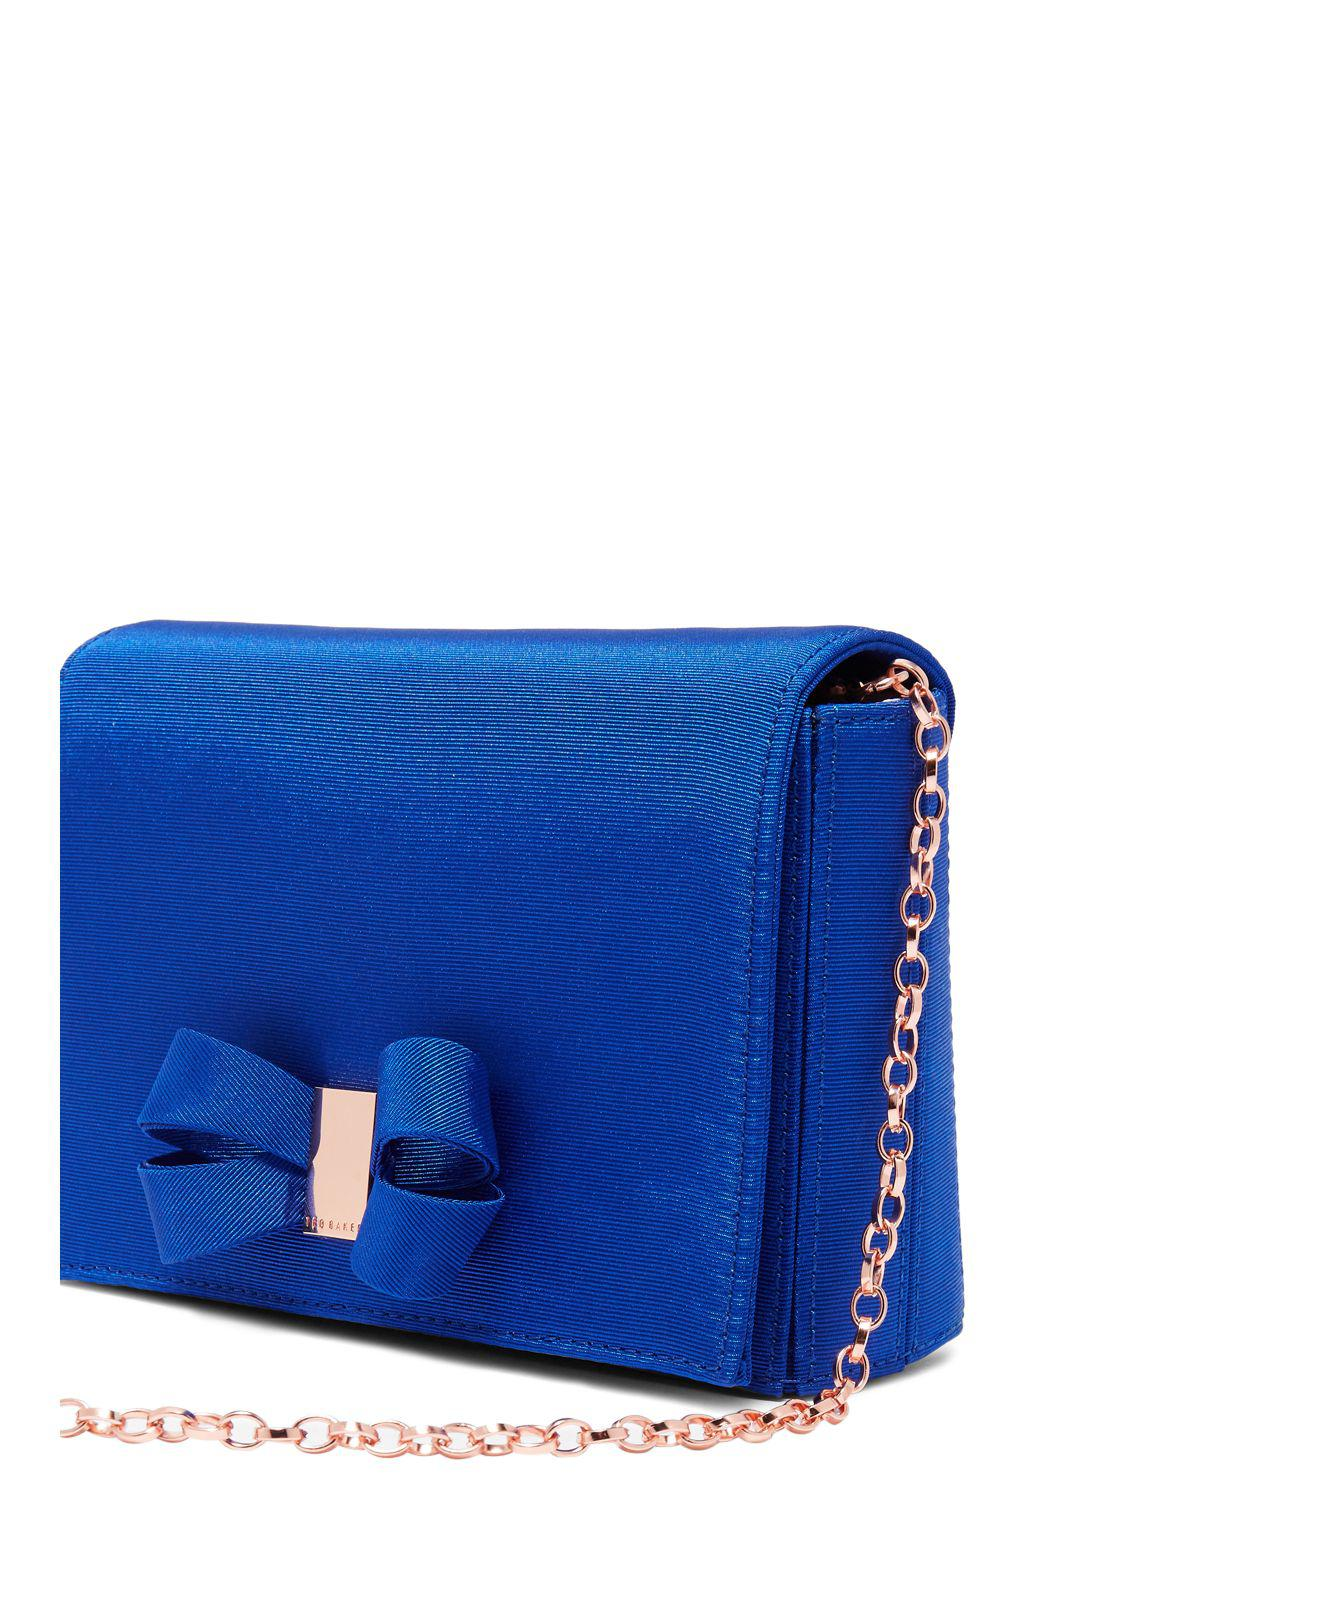 985bfbe930 Ted Baker Stacyy Looped Bow Satin Clutch in Blue - Lyst